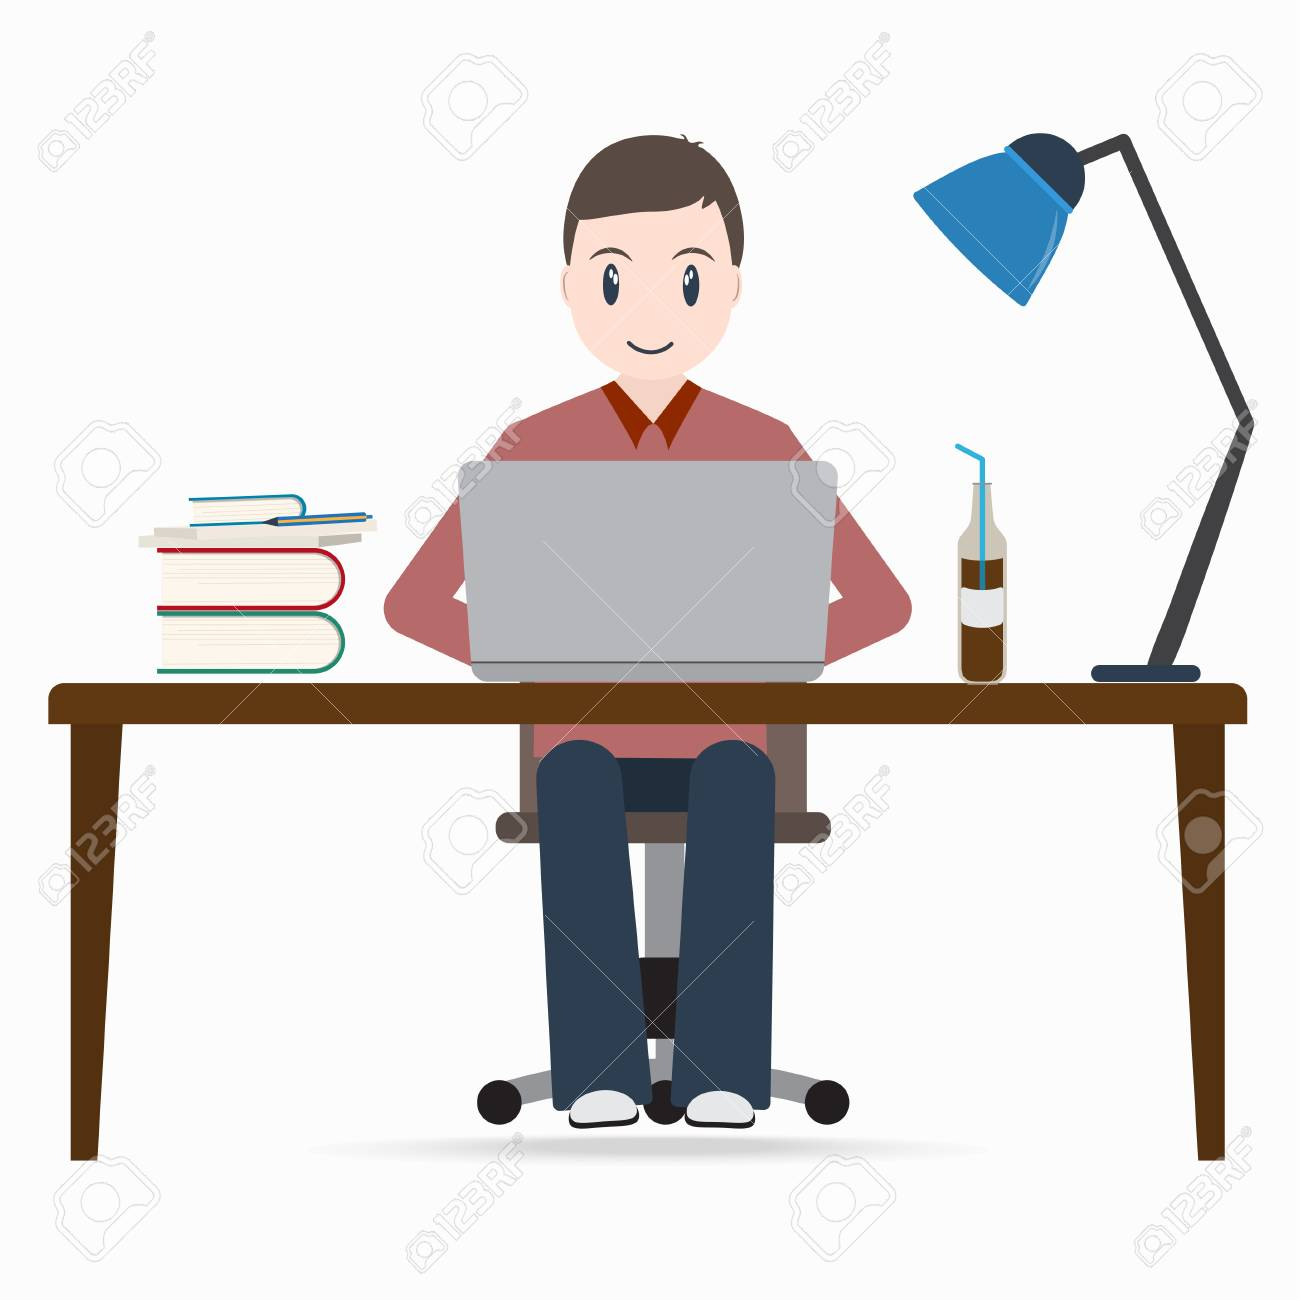 man working on a computer, student sitting front of laptop icon